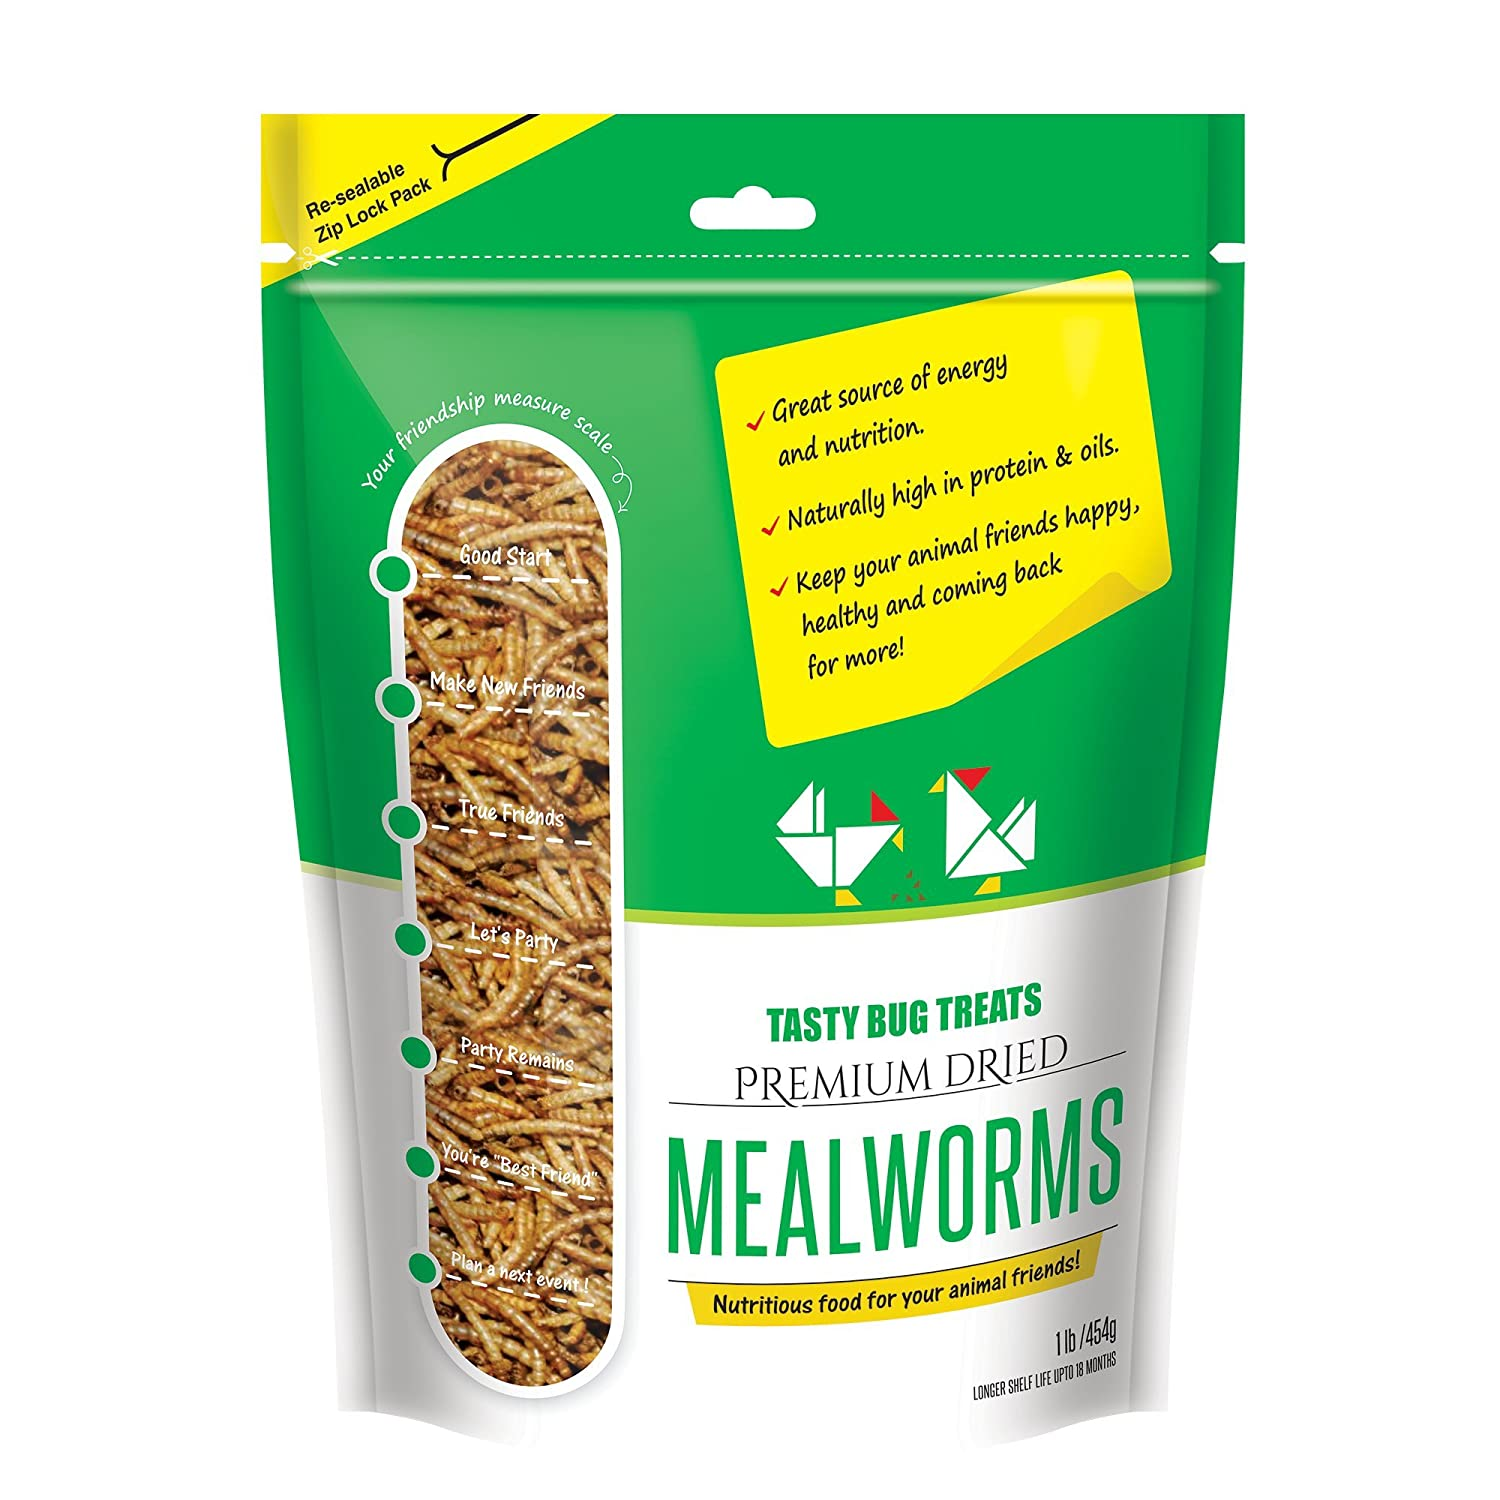 Mealworms Premium Dried Mealworms (1 lb Bag) byTasty Bug Treats (Meal Worms)